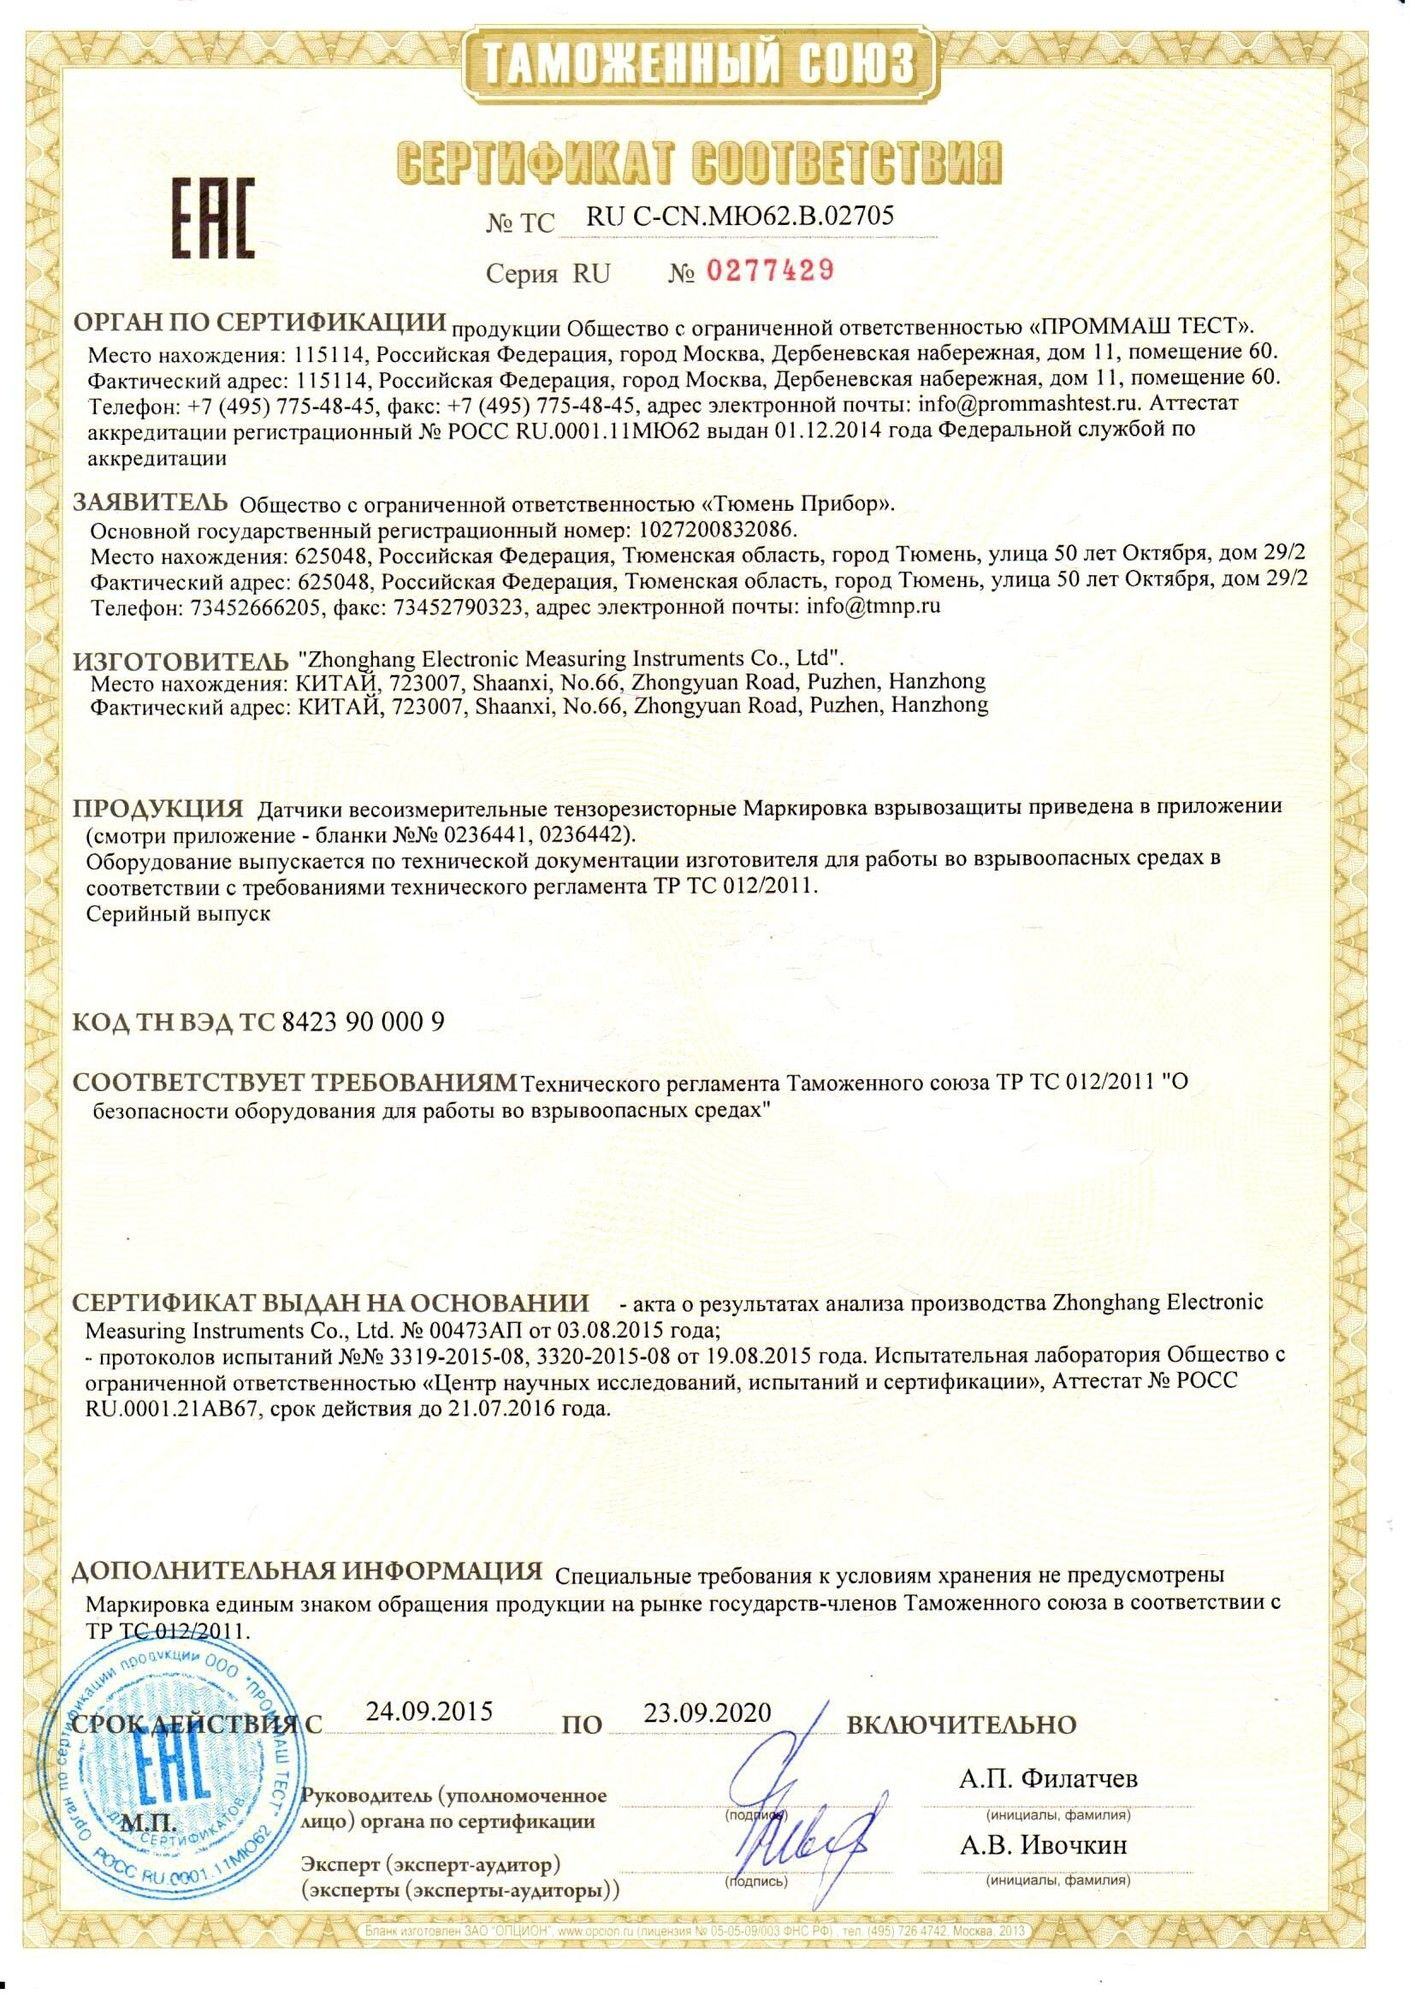 eac certificate gost russian